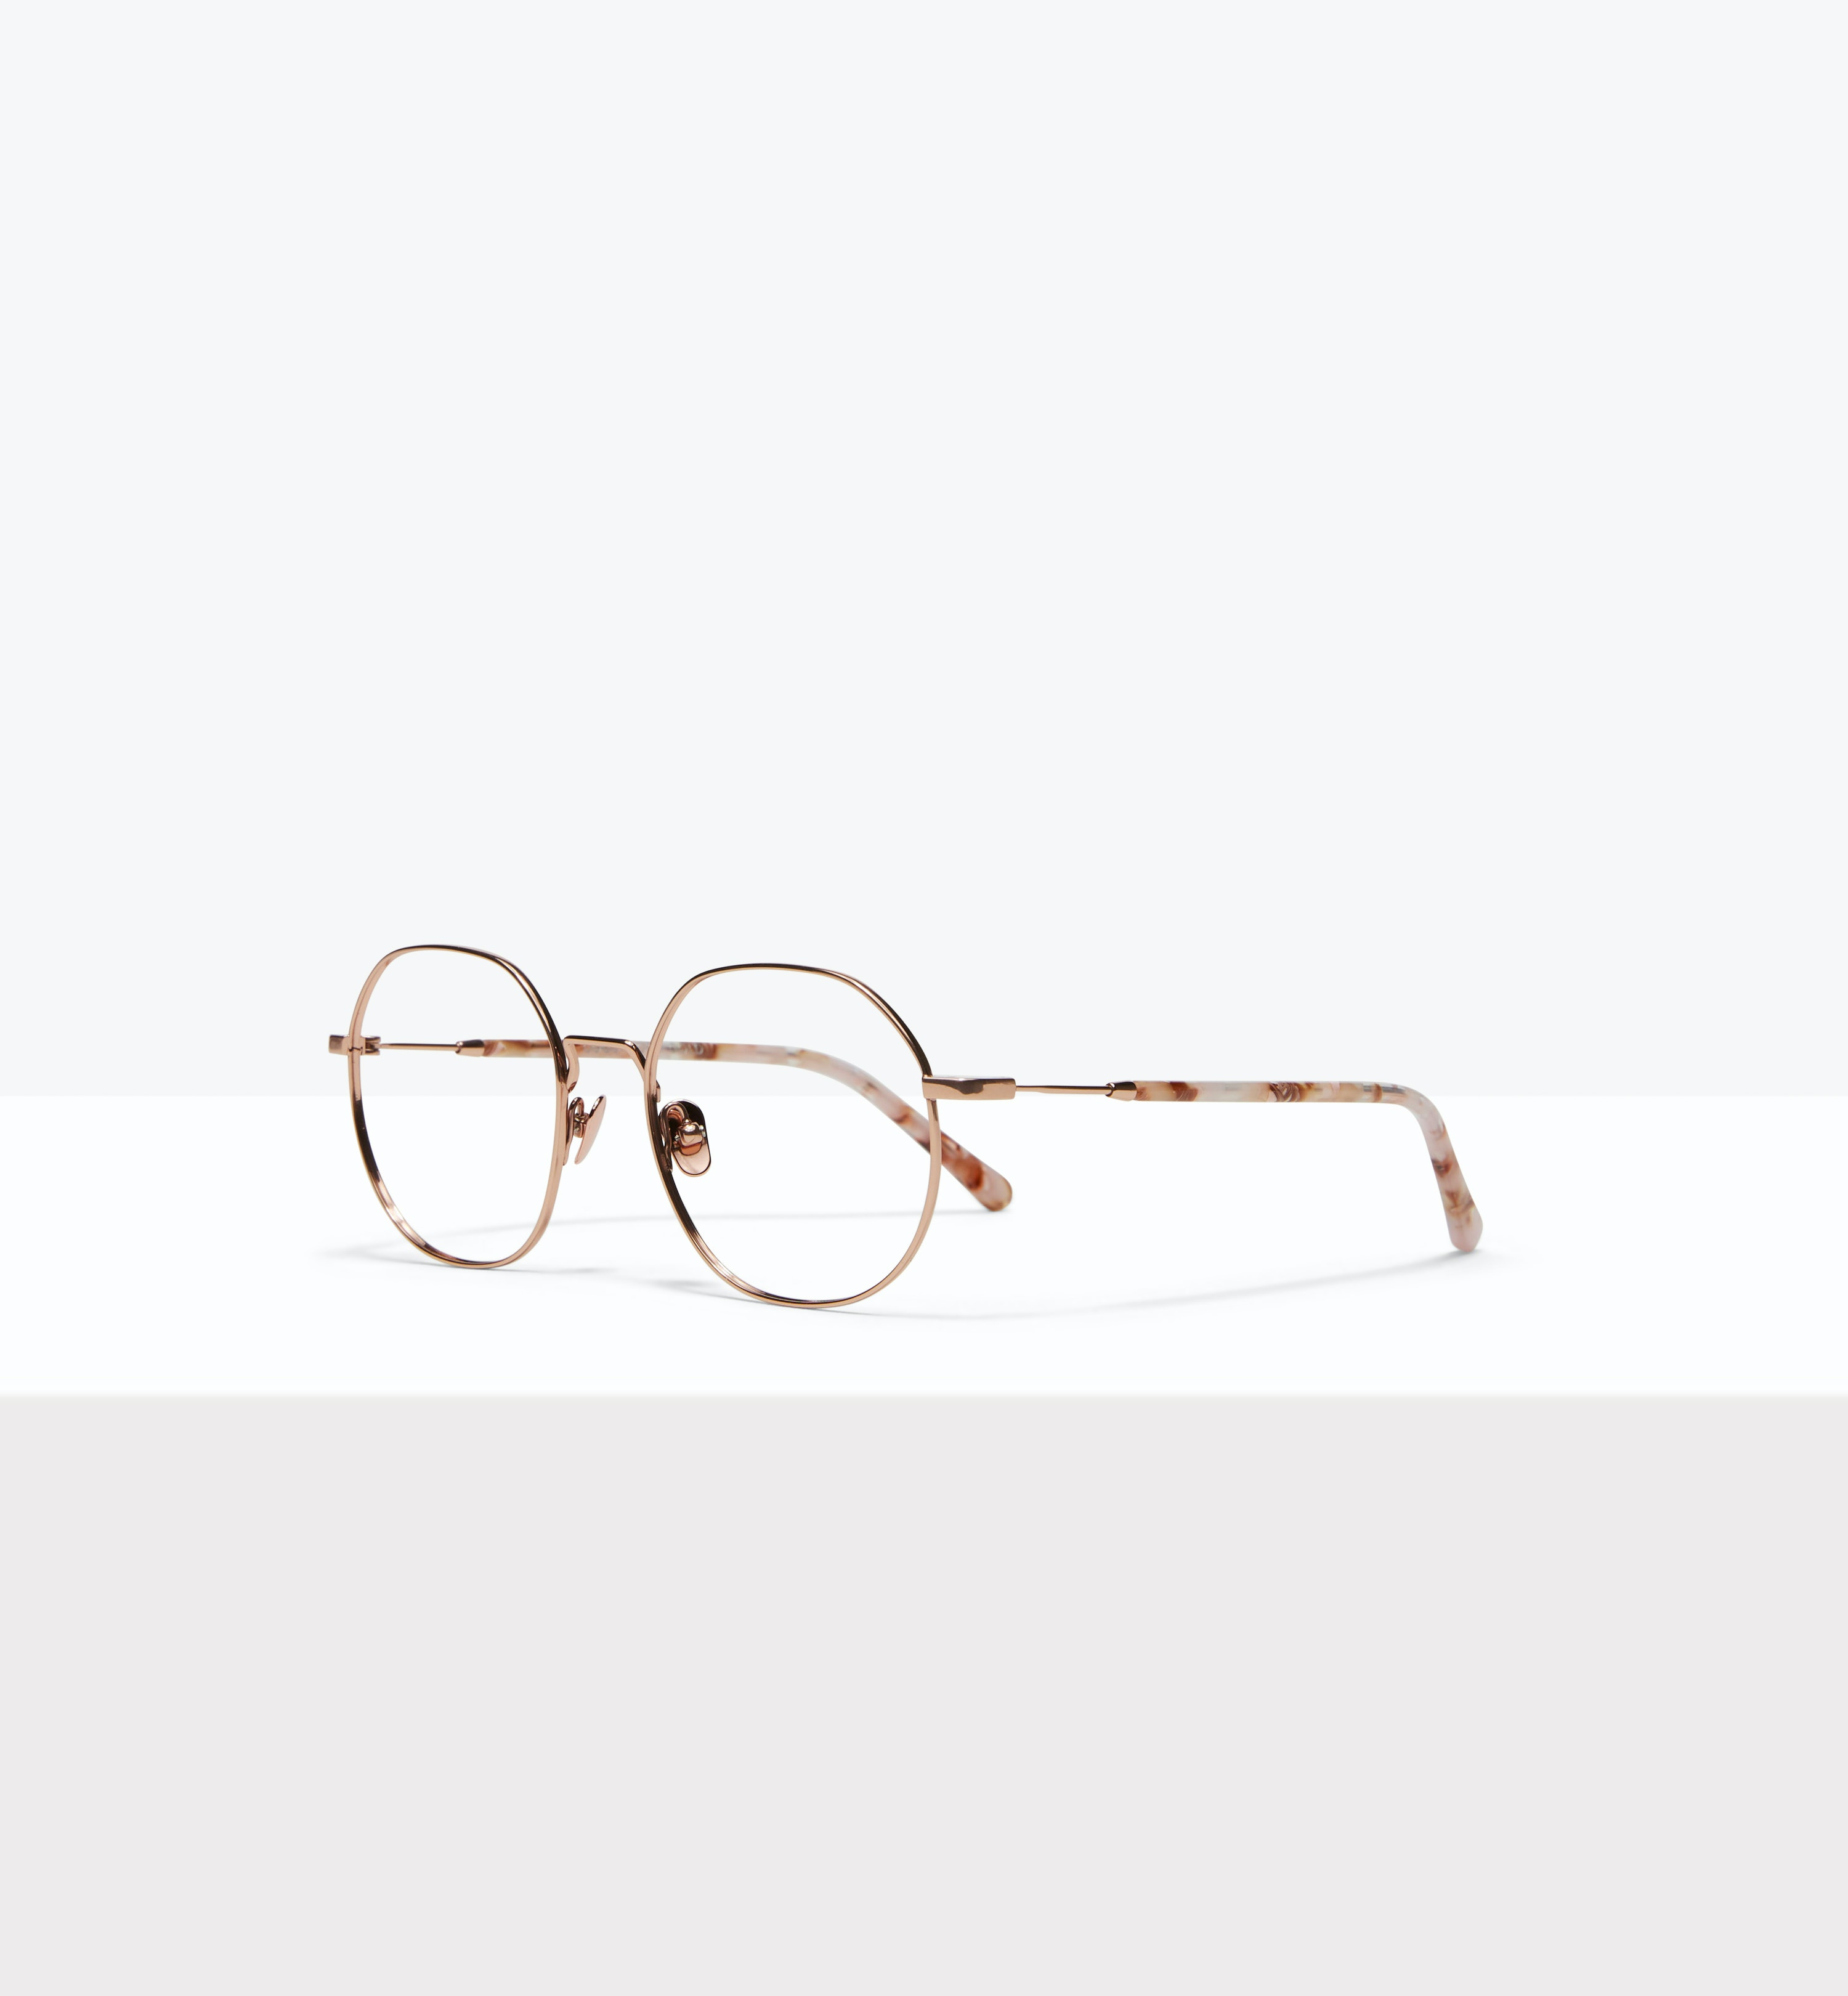 Affordable Fashion Glasses Round Eyeglasses Women Coco Rose Gold Tilt